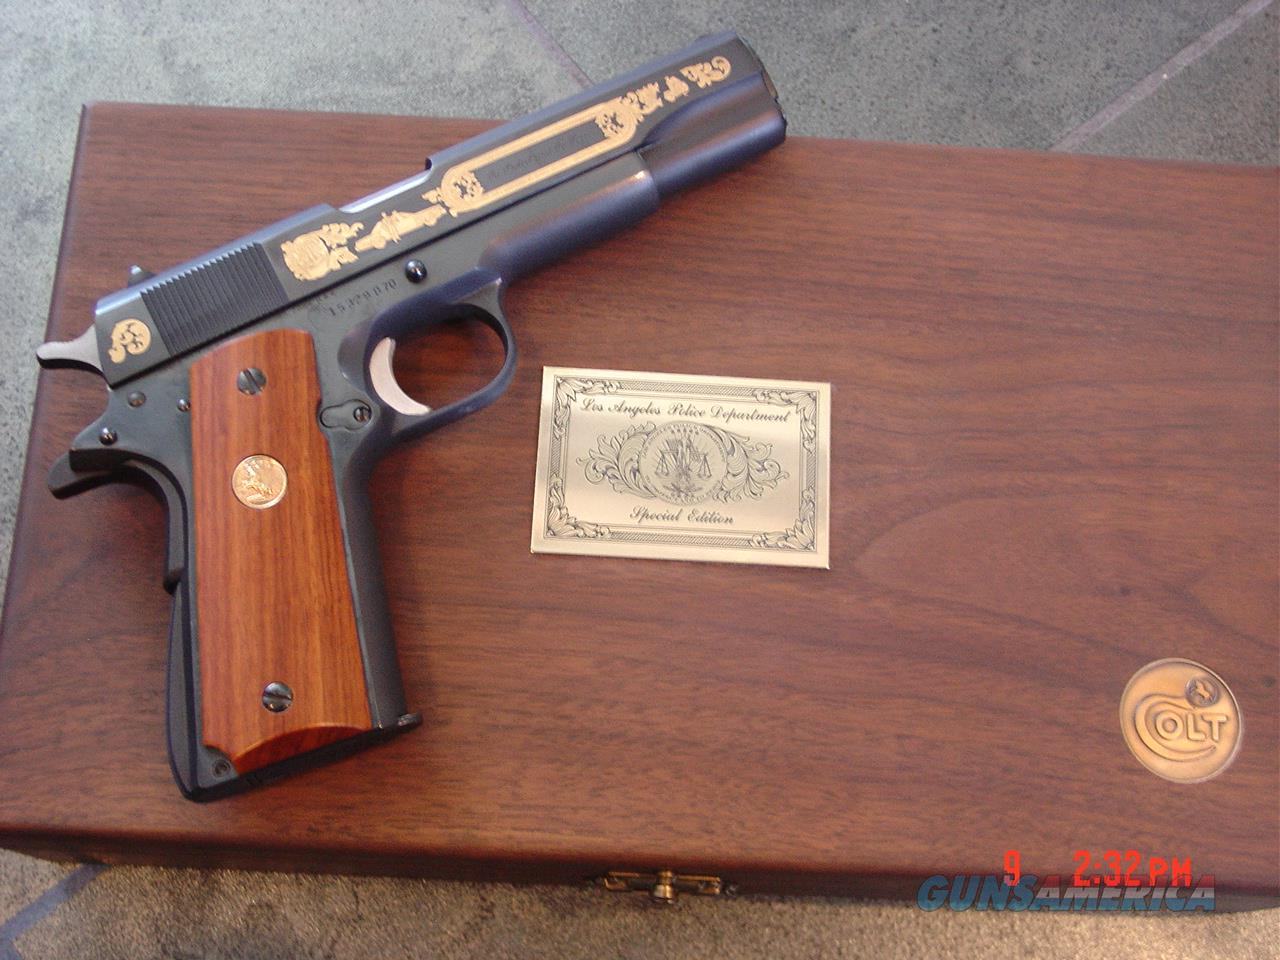 Colt 1911 Series 70 45acp,LAPD Special Edition,gold engraved on blue,rich  custom wood grips,in fitted wood case,& brass LAPD plate on top,looks